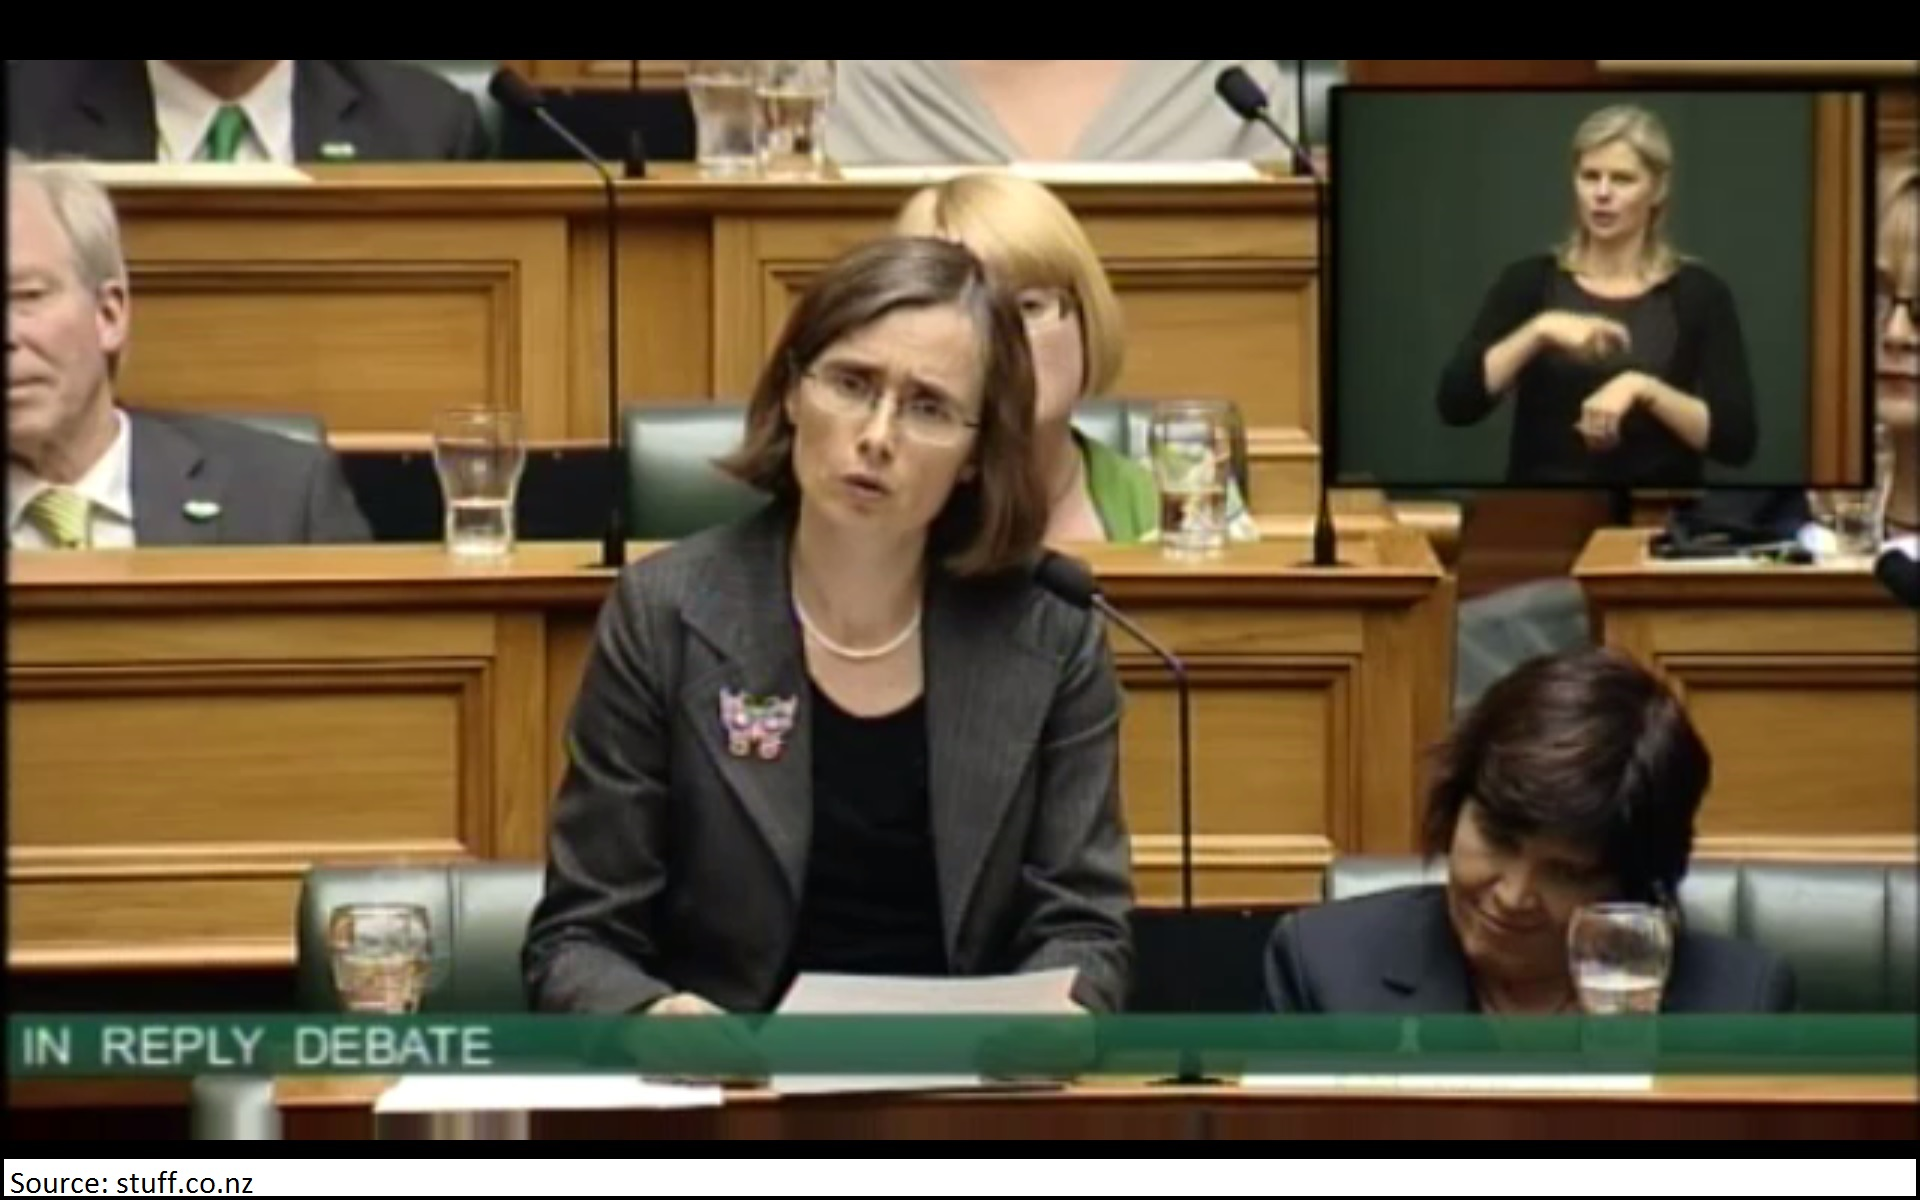 Member of Parliament Mojo Mathers delivers her first speech in New Zealand's parliament.